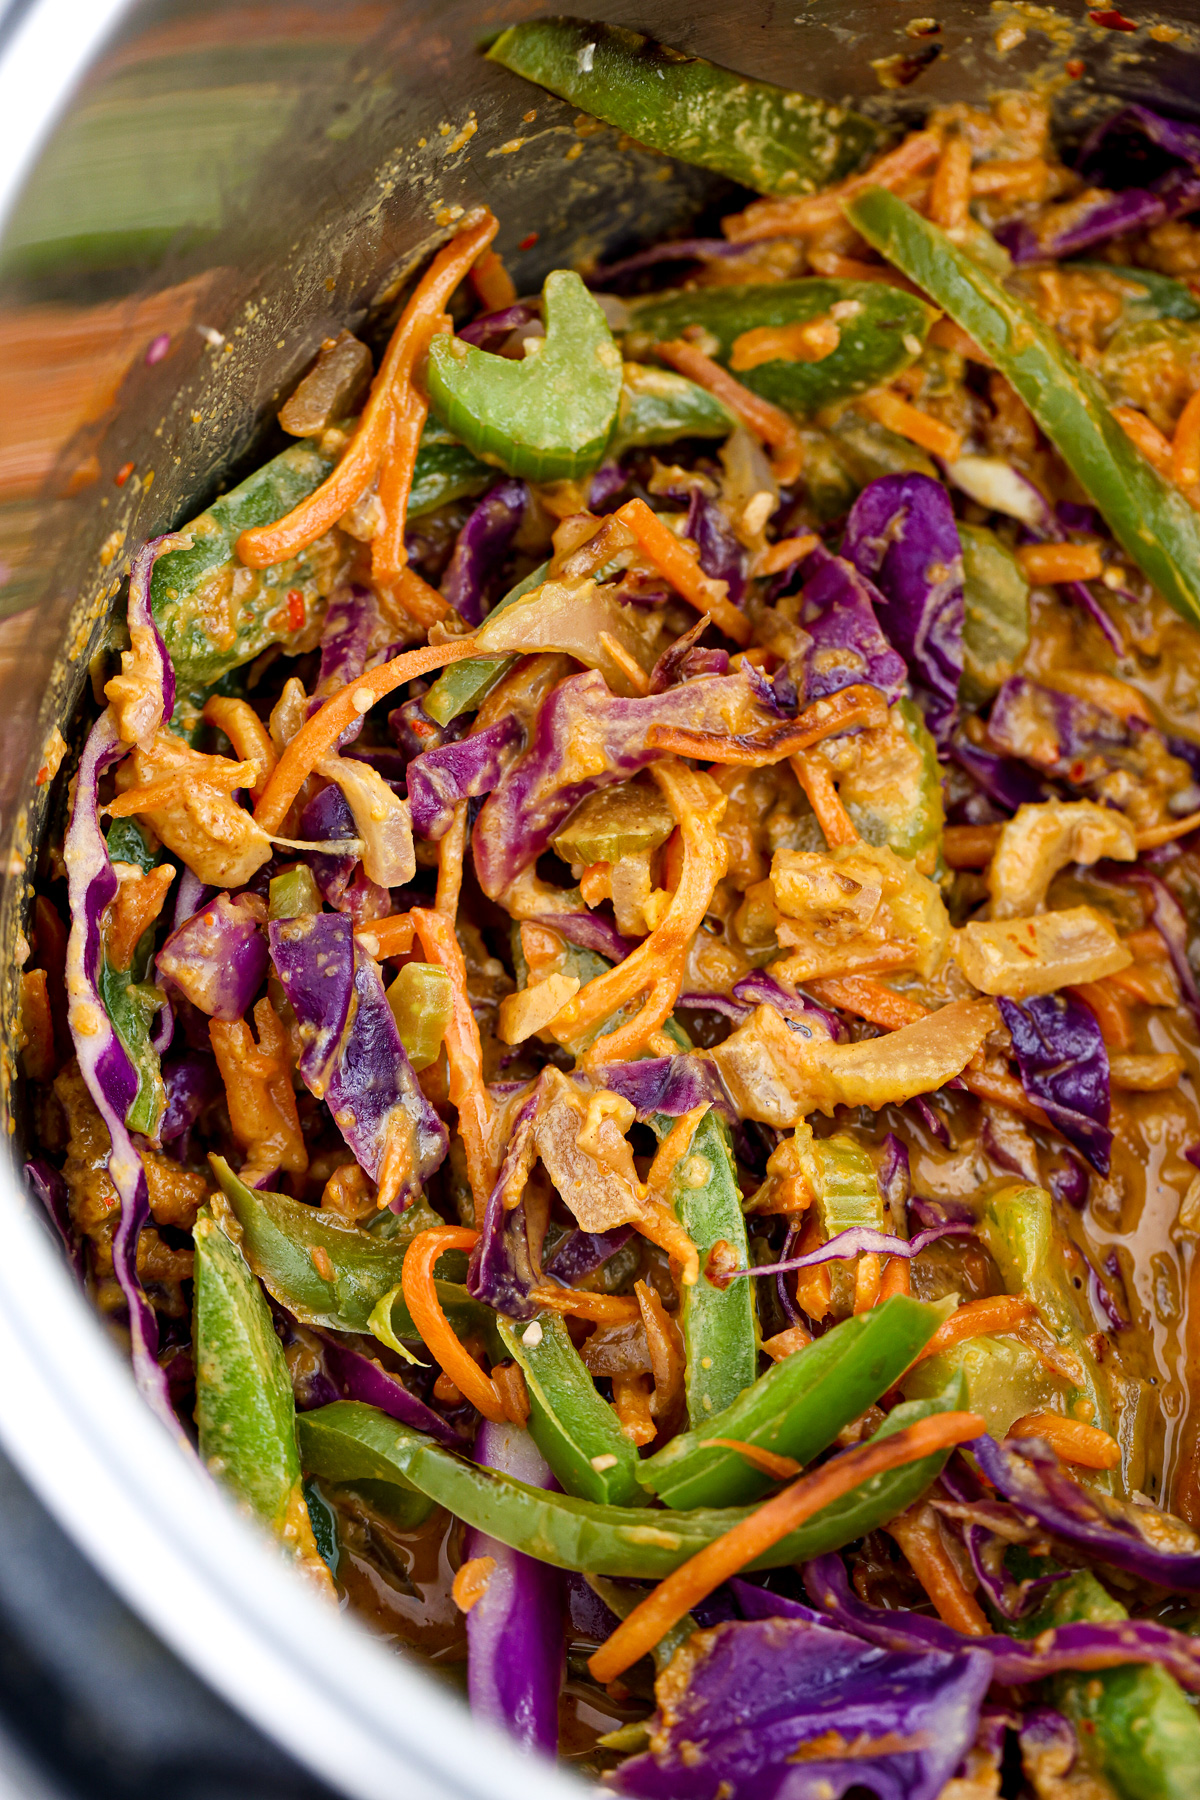 Mixed veggies with celery, green bell peppers, cabbage and peanut sauce in a metal instant pot.